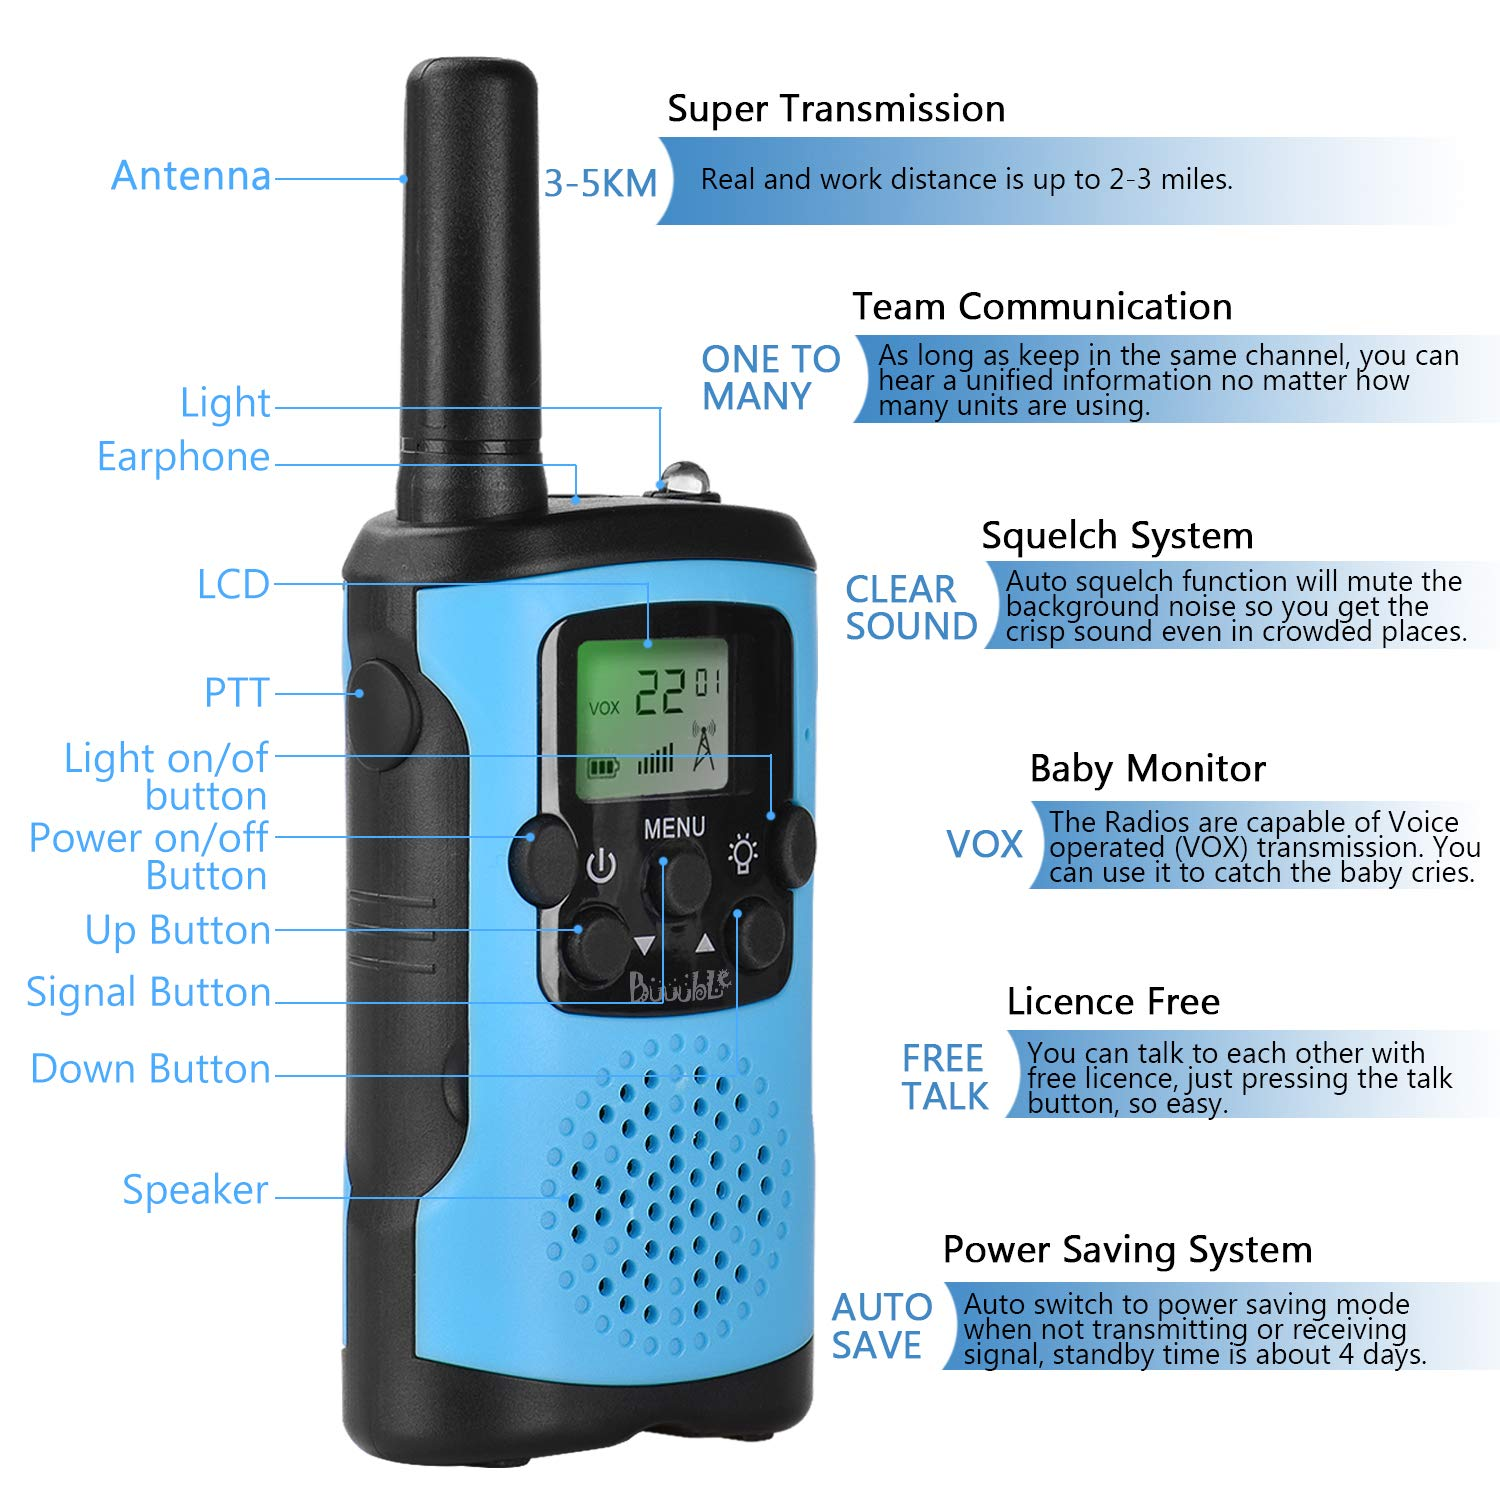 Walkie Talkies for Kids 22 Channel 3 Mile Long Range Many People Use It to Prevent Children's Myopia and Away from Electronic Games Best Birthday Gifts for 4-6 Year Old Boys Girls More Fun Game (Blue) by Buuuble (Image #5)